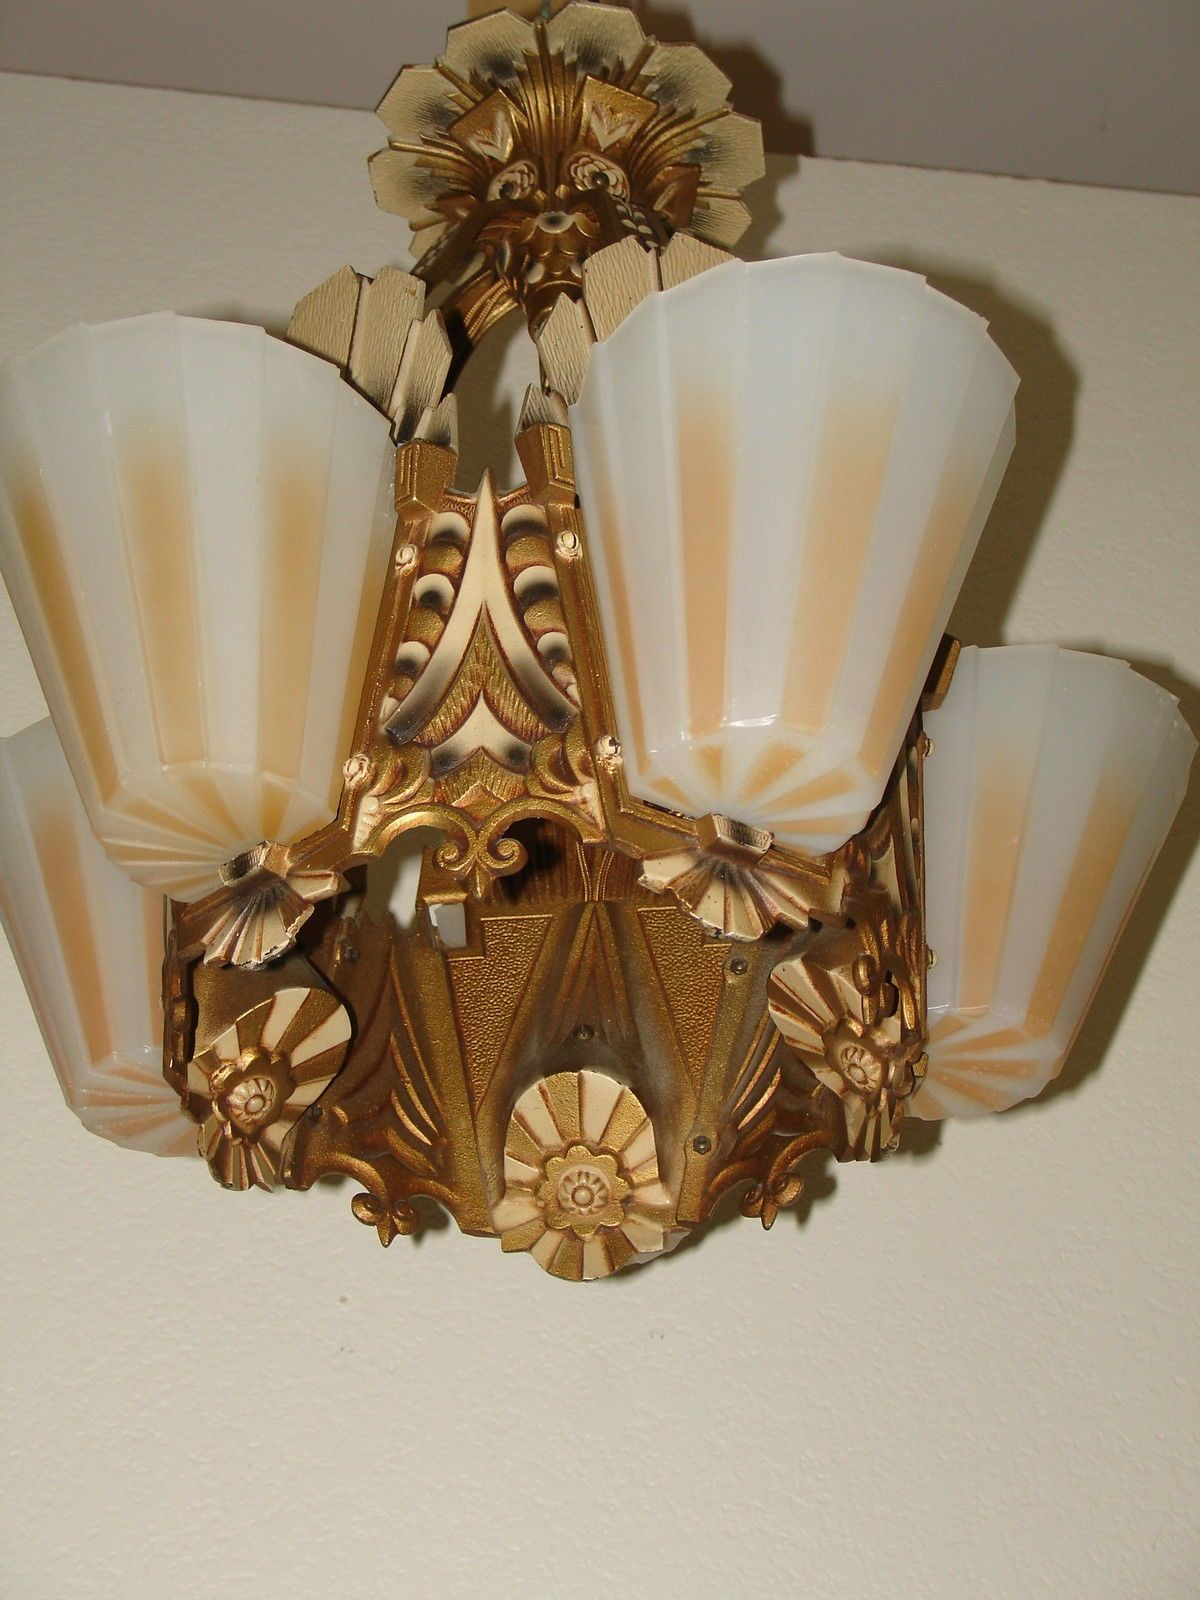 Details about art deco slip shade chandelier beardslee art deco slip shade chandelier beardsleewilliamnson all shades no chips arubaitofo Image collections